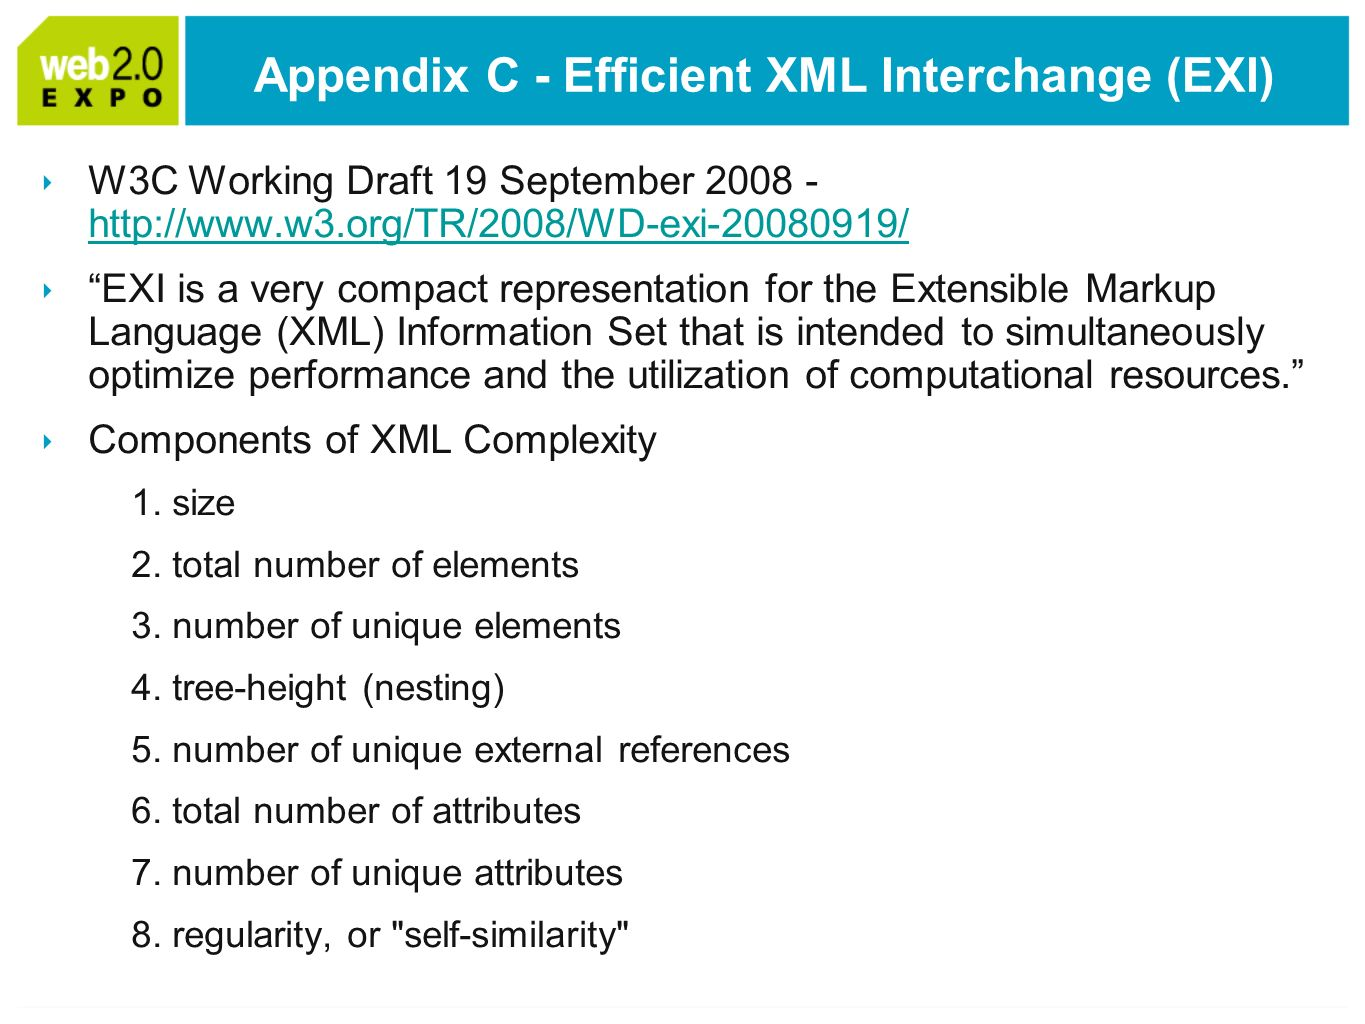 Appendix C - Efficient XML Interchange (EXI) W3C Working Draft 19 September EXI is a very compact representation for the Extensible Markup Language (XML) Information Set that is intended to simultaneously optimize performance and the utilization of computational resources.